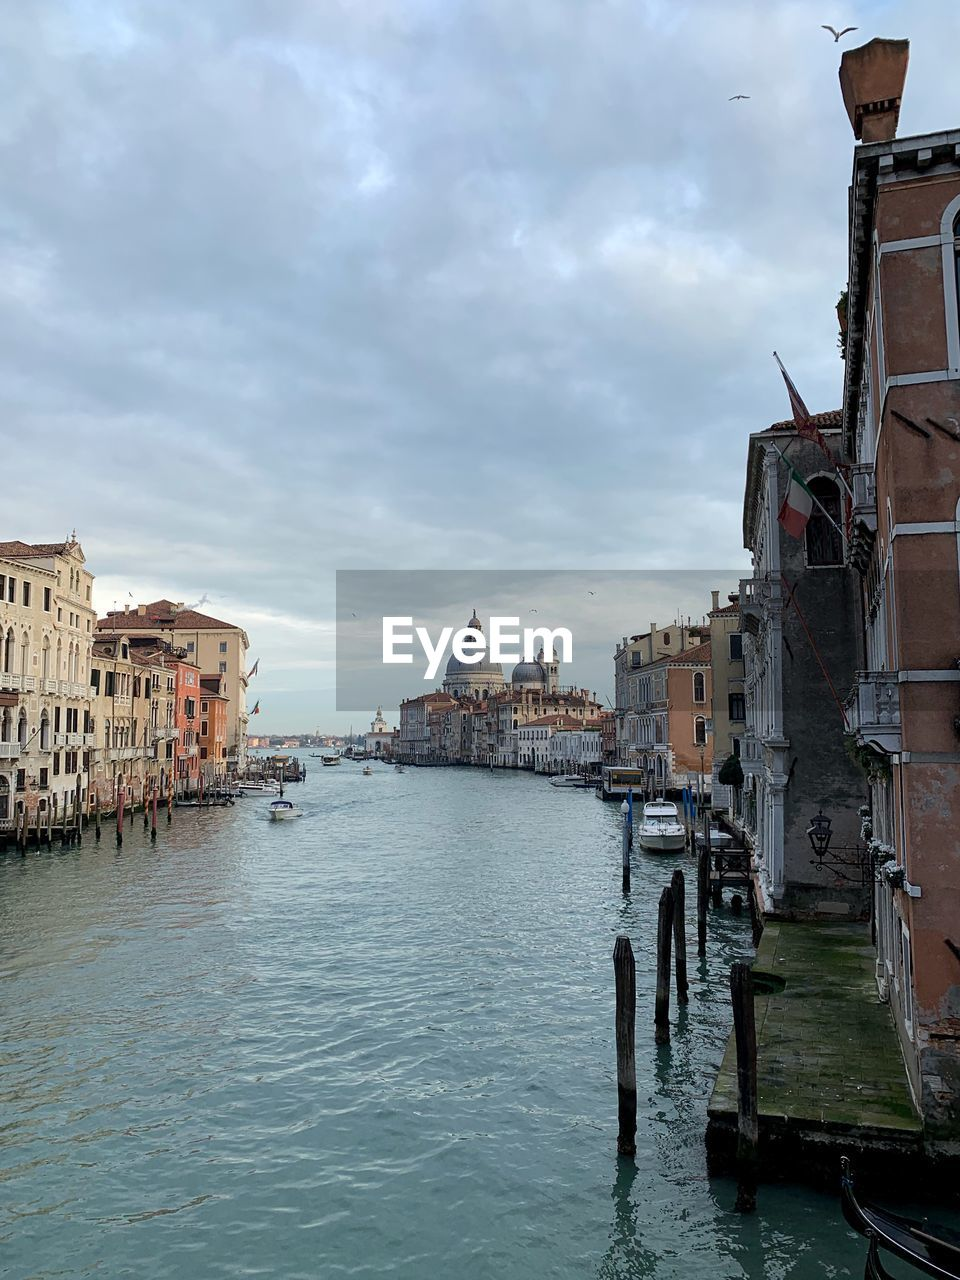 architecture, building exterior, built structure, water, cloud - sky, sky, waterfront, city, nature, nautical vessel, building, canal, transportation, travel destinations, mode of transportation, day, travel, residential district, no people, outdoors, gondola - traditional boat, wooden post